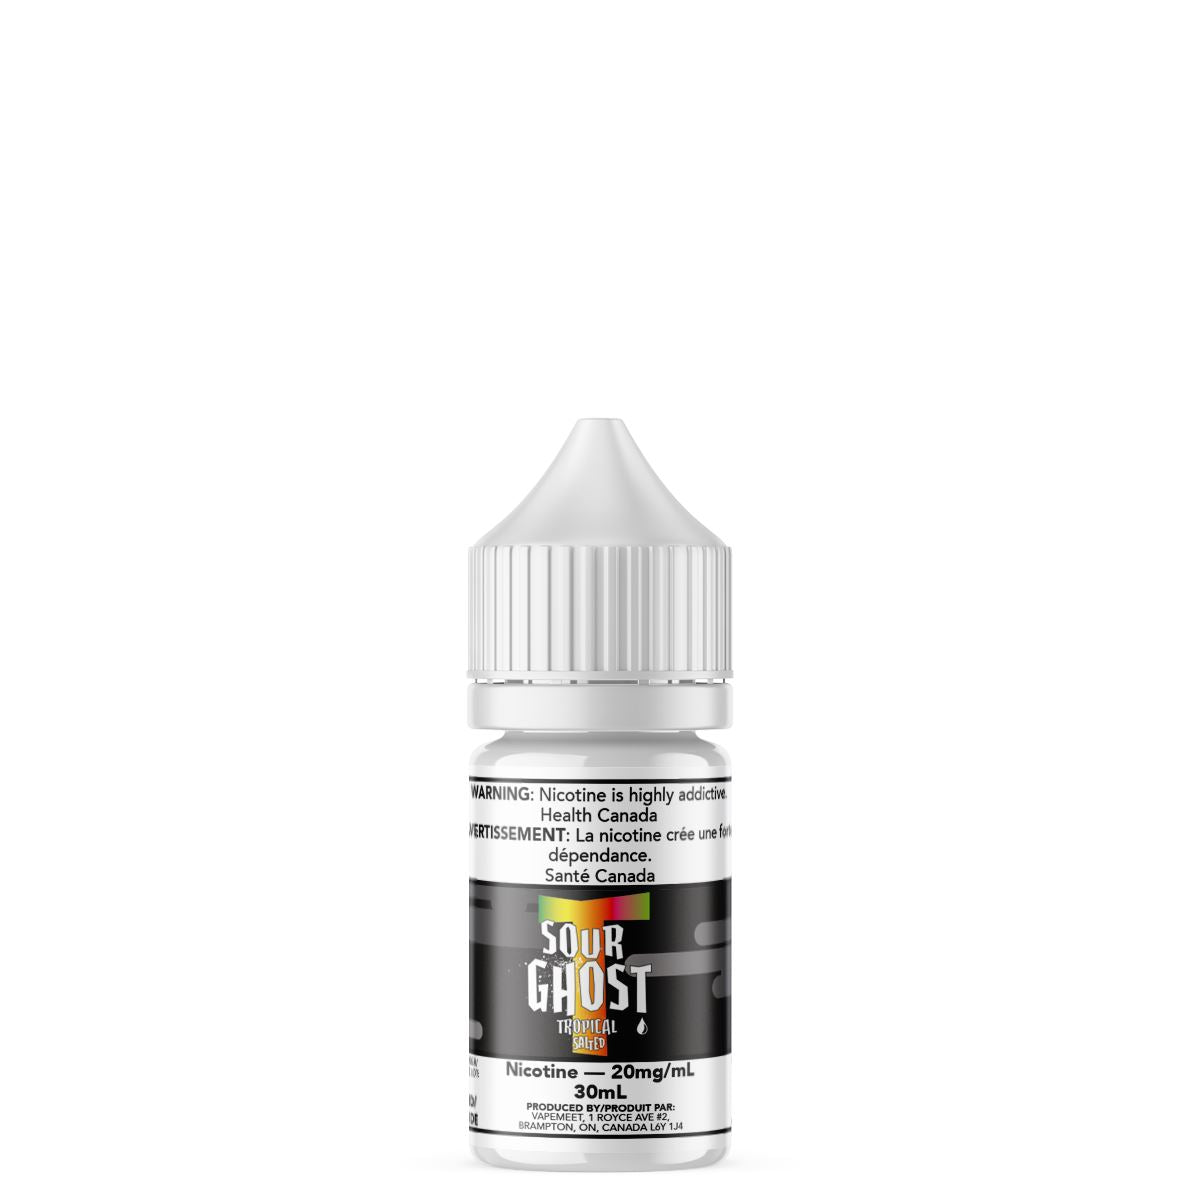 Ghosted Salted - Sour Ghost Tropical E-Liquid Ghosted Salted 30mL 20 mg/mL